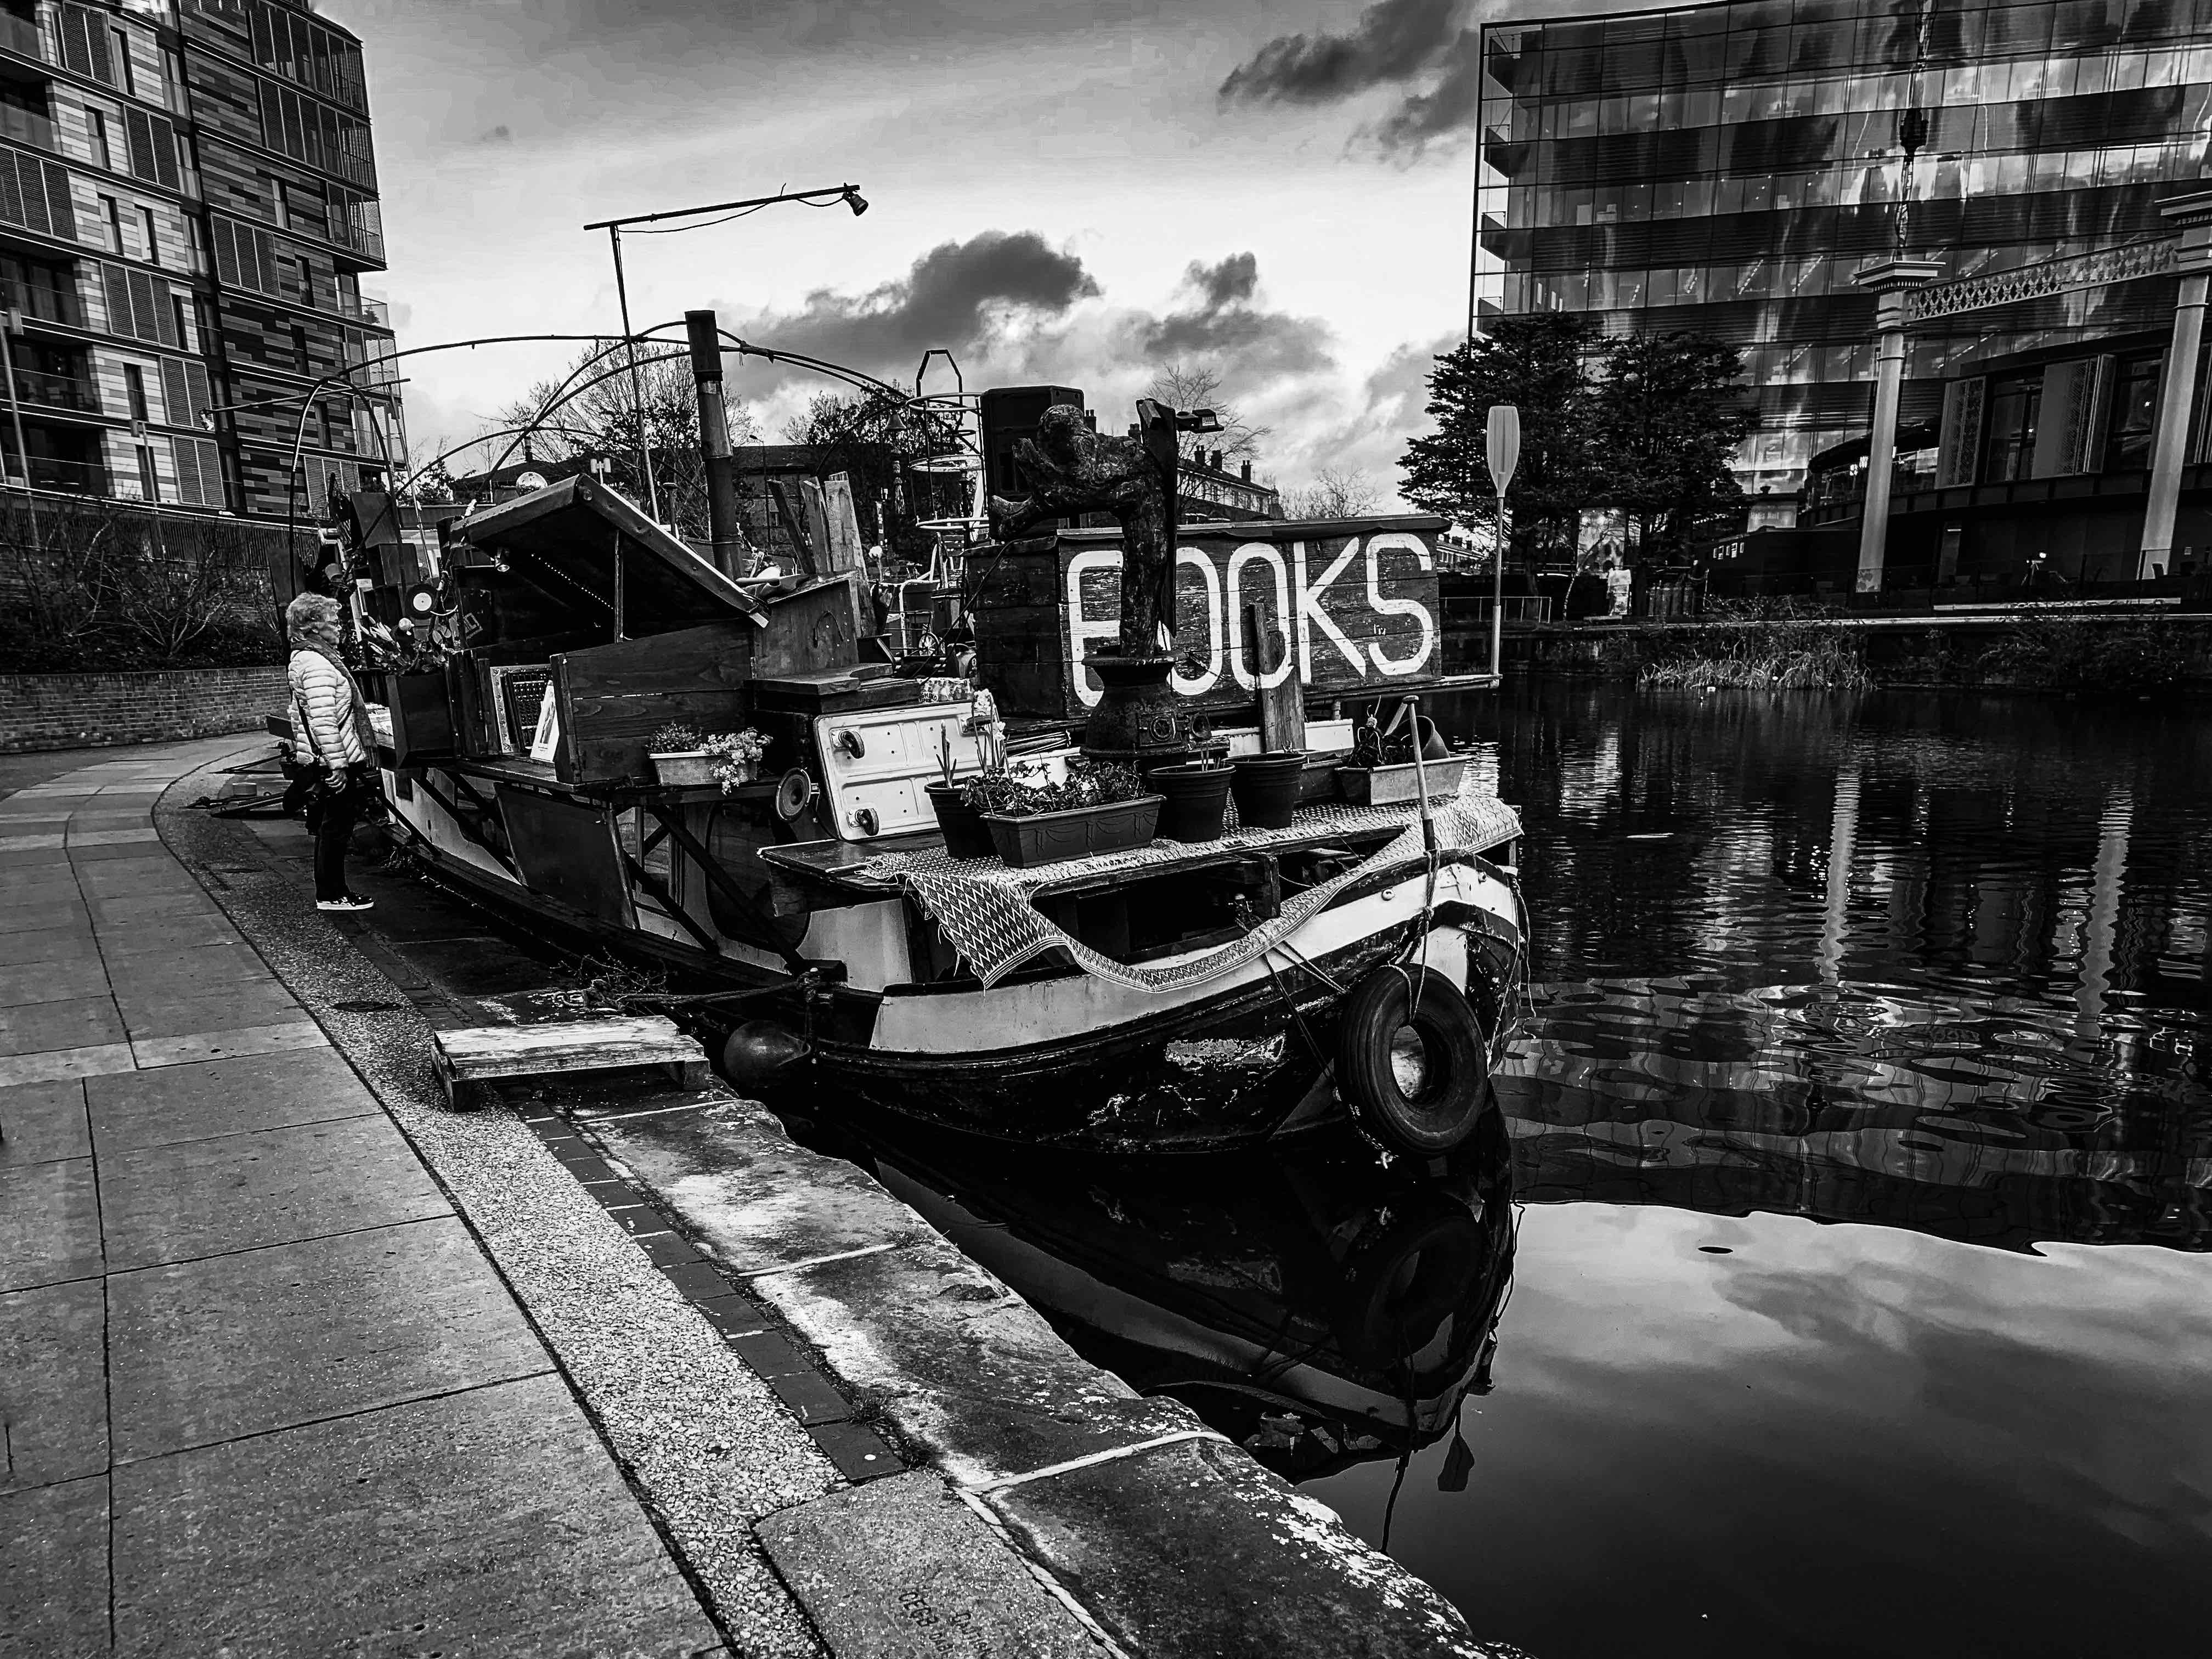 'Words On The Water' book barge moored down stream east from the Coal Drops Yard. The boat is an old barge that has been build out in all directions selling books and records. It's kitschy, but the best kind.